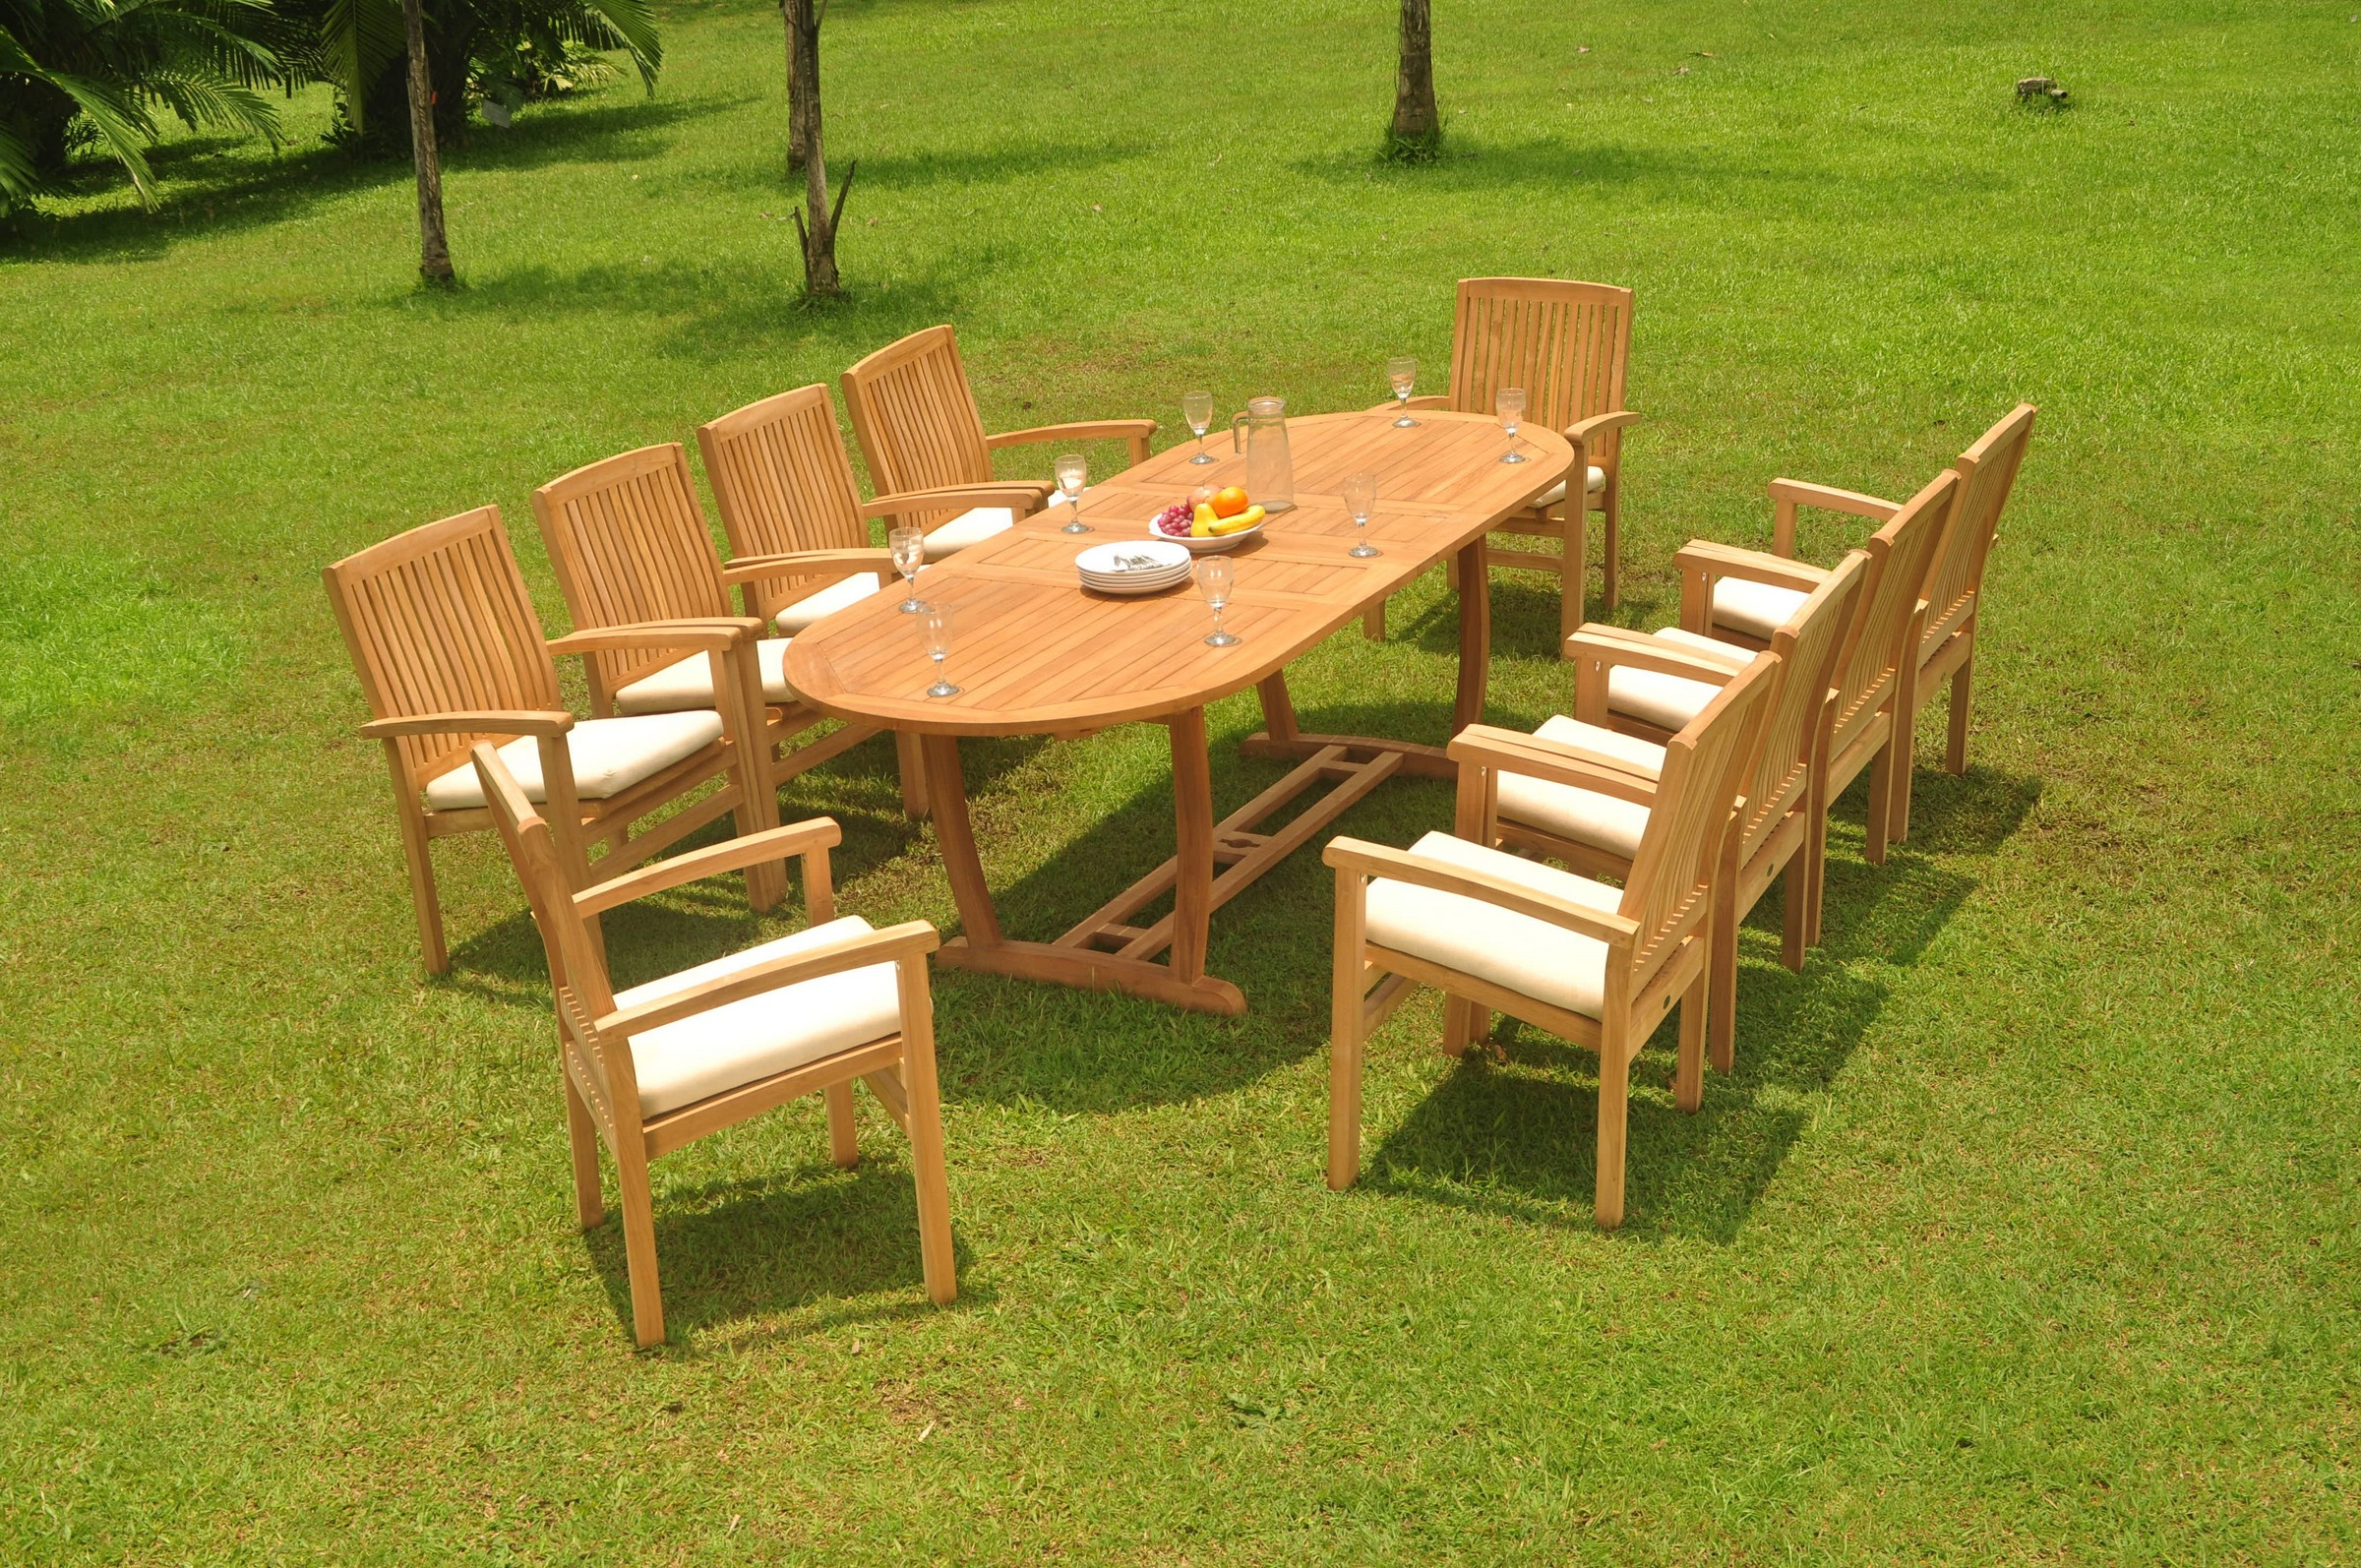 Decorate Your Indoors Outdoors With Quality Teak Furniture